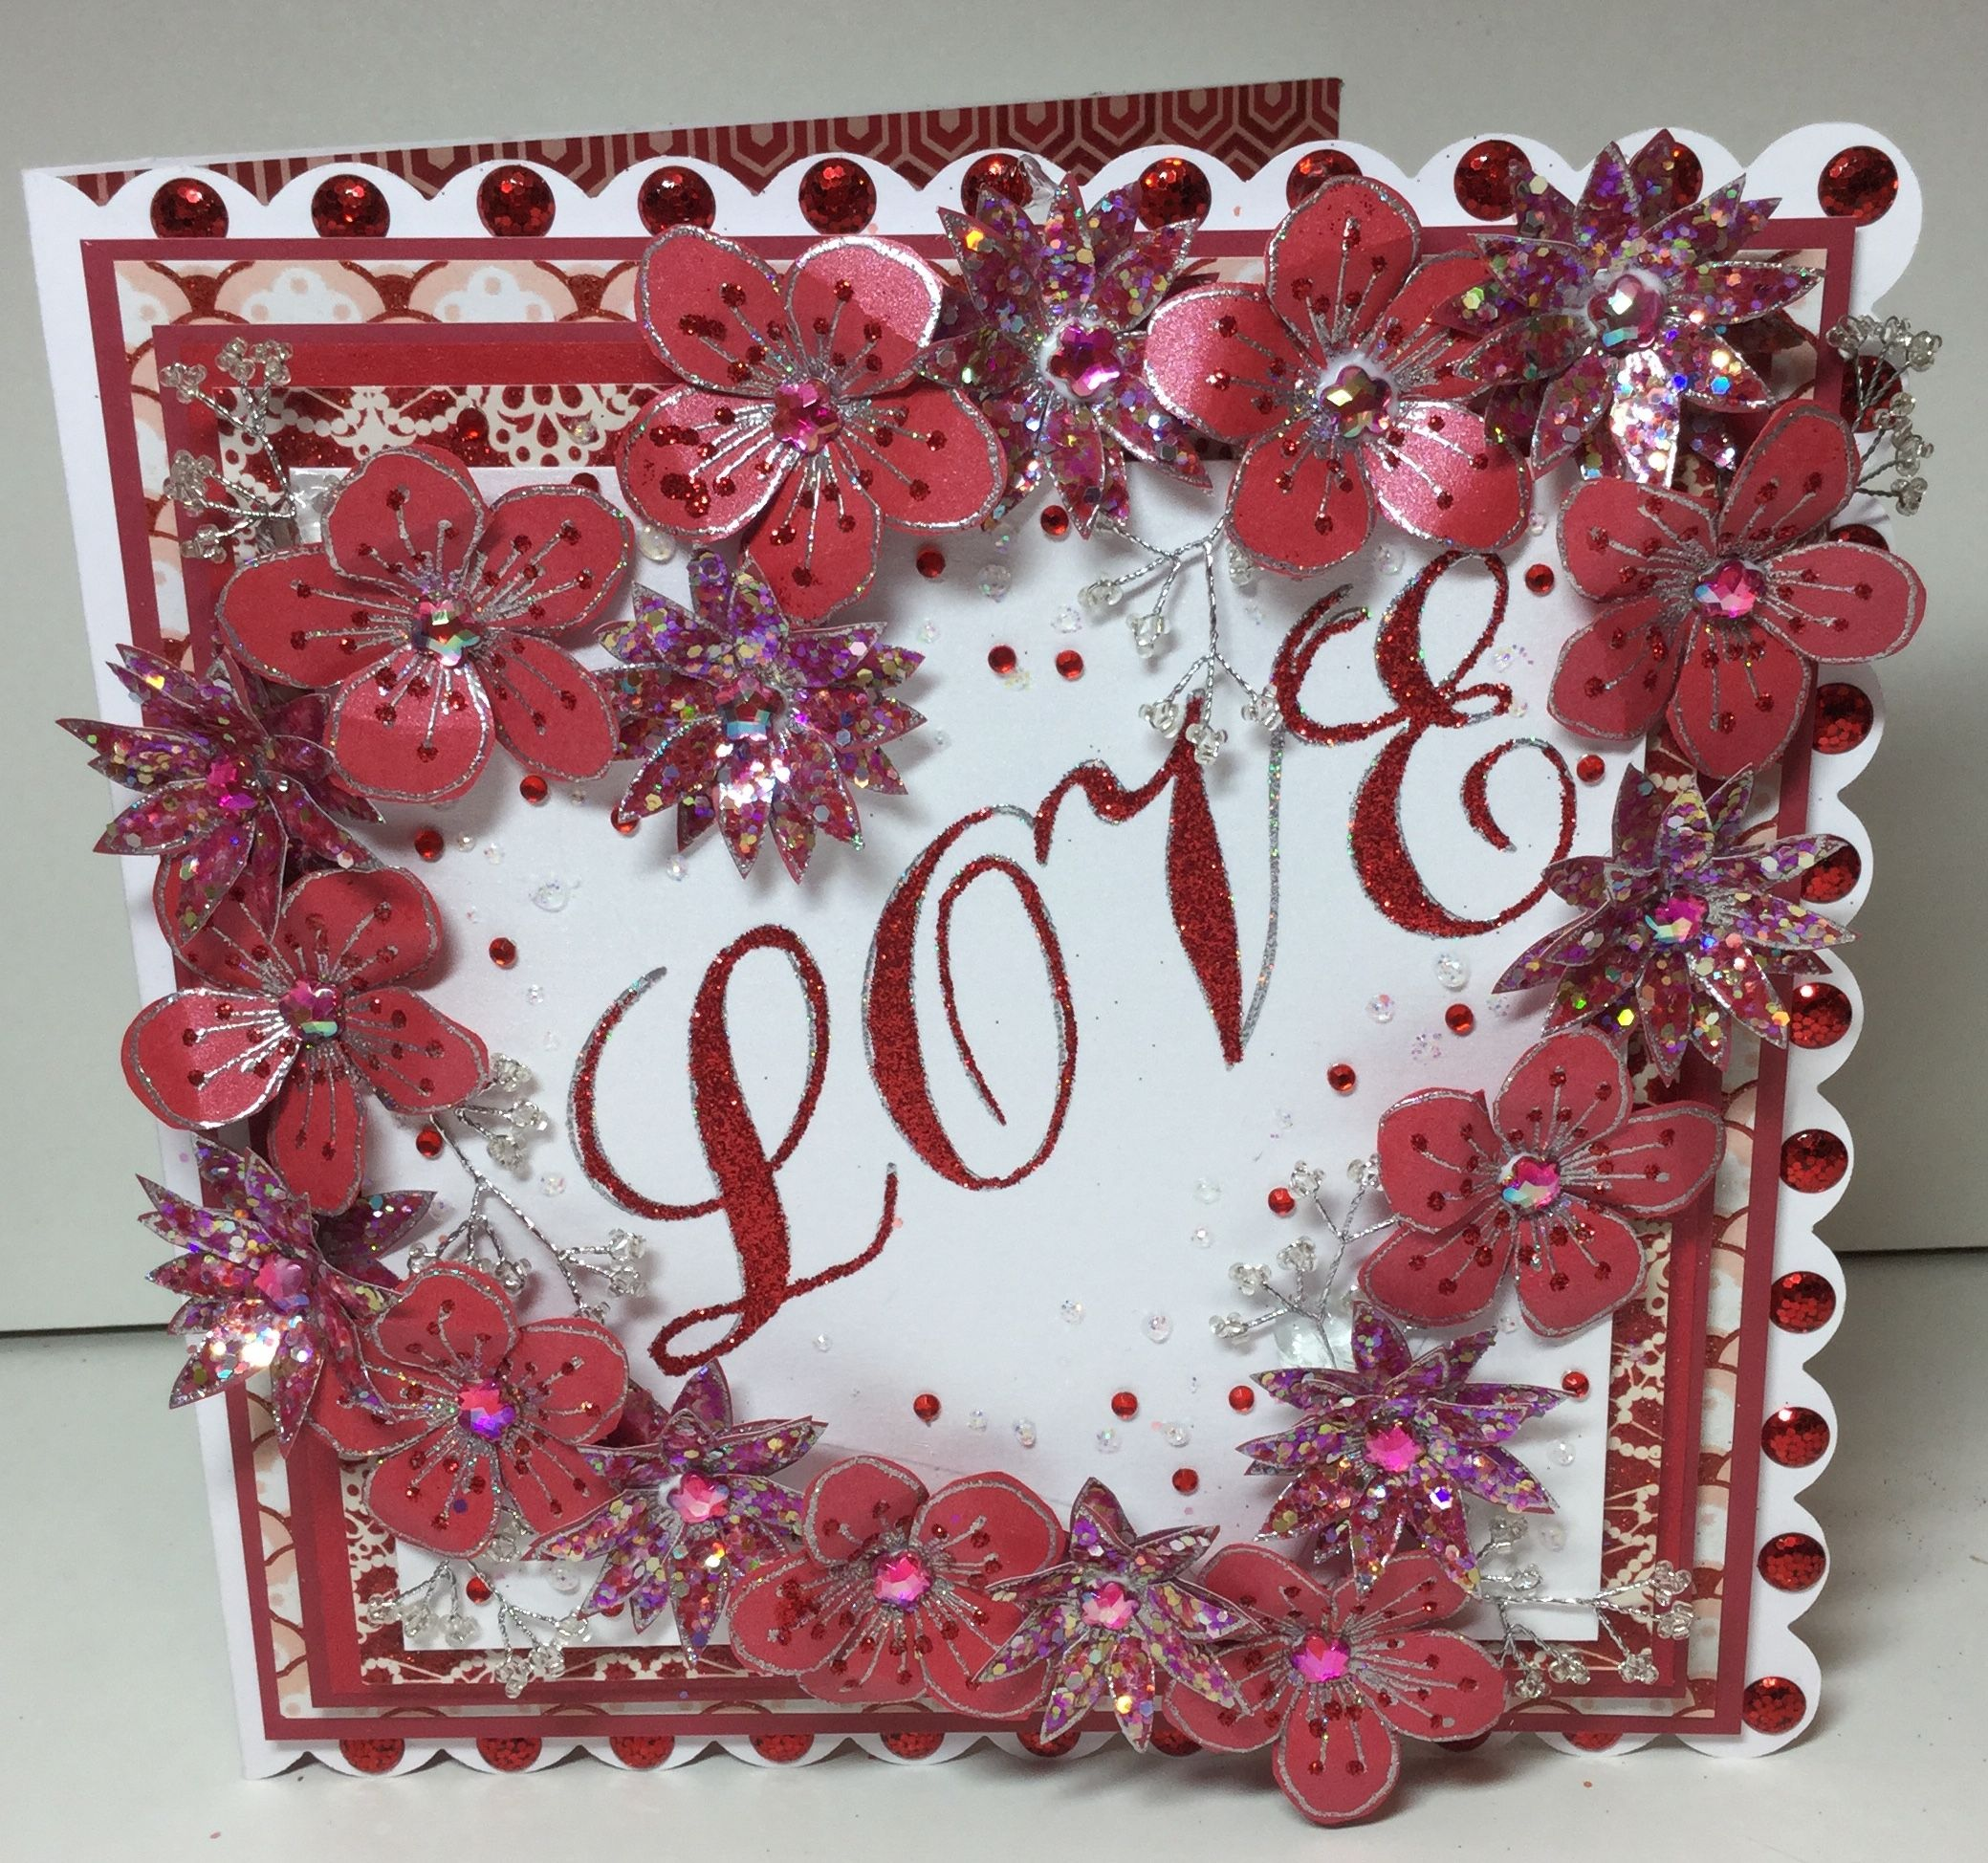 Gorgeous #flower embellished card made using the Stamps by Chloe range. Available to buy at Create & #Craft - http://www.createandcraft.tv/SearchGridView.aspx?fh_location=//CreateAndCraft/en_GB/$s=stamps%20by%20chloe&gs=stamps%20by%20chloe #papercraft #cardmaking